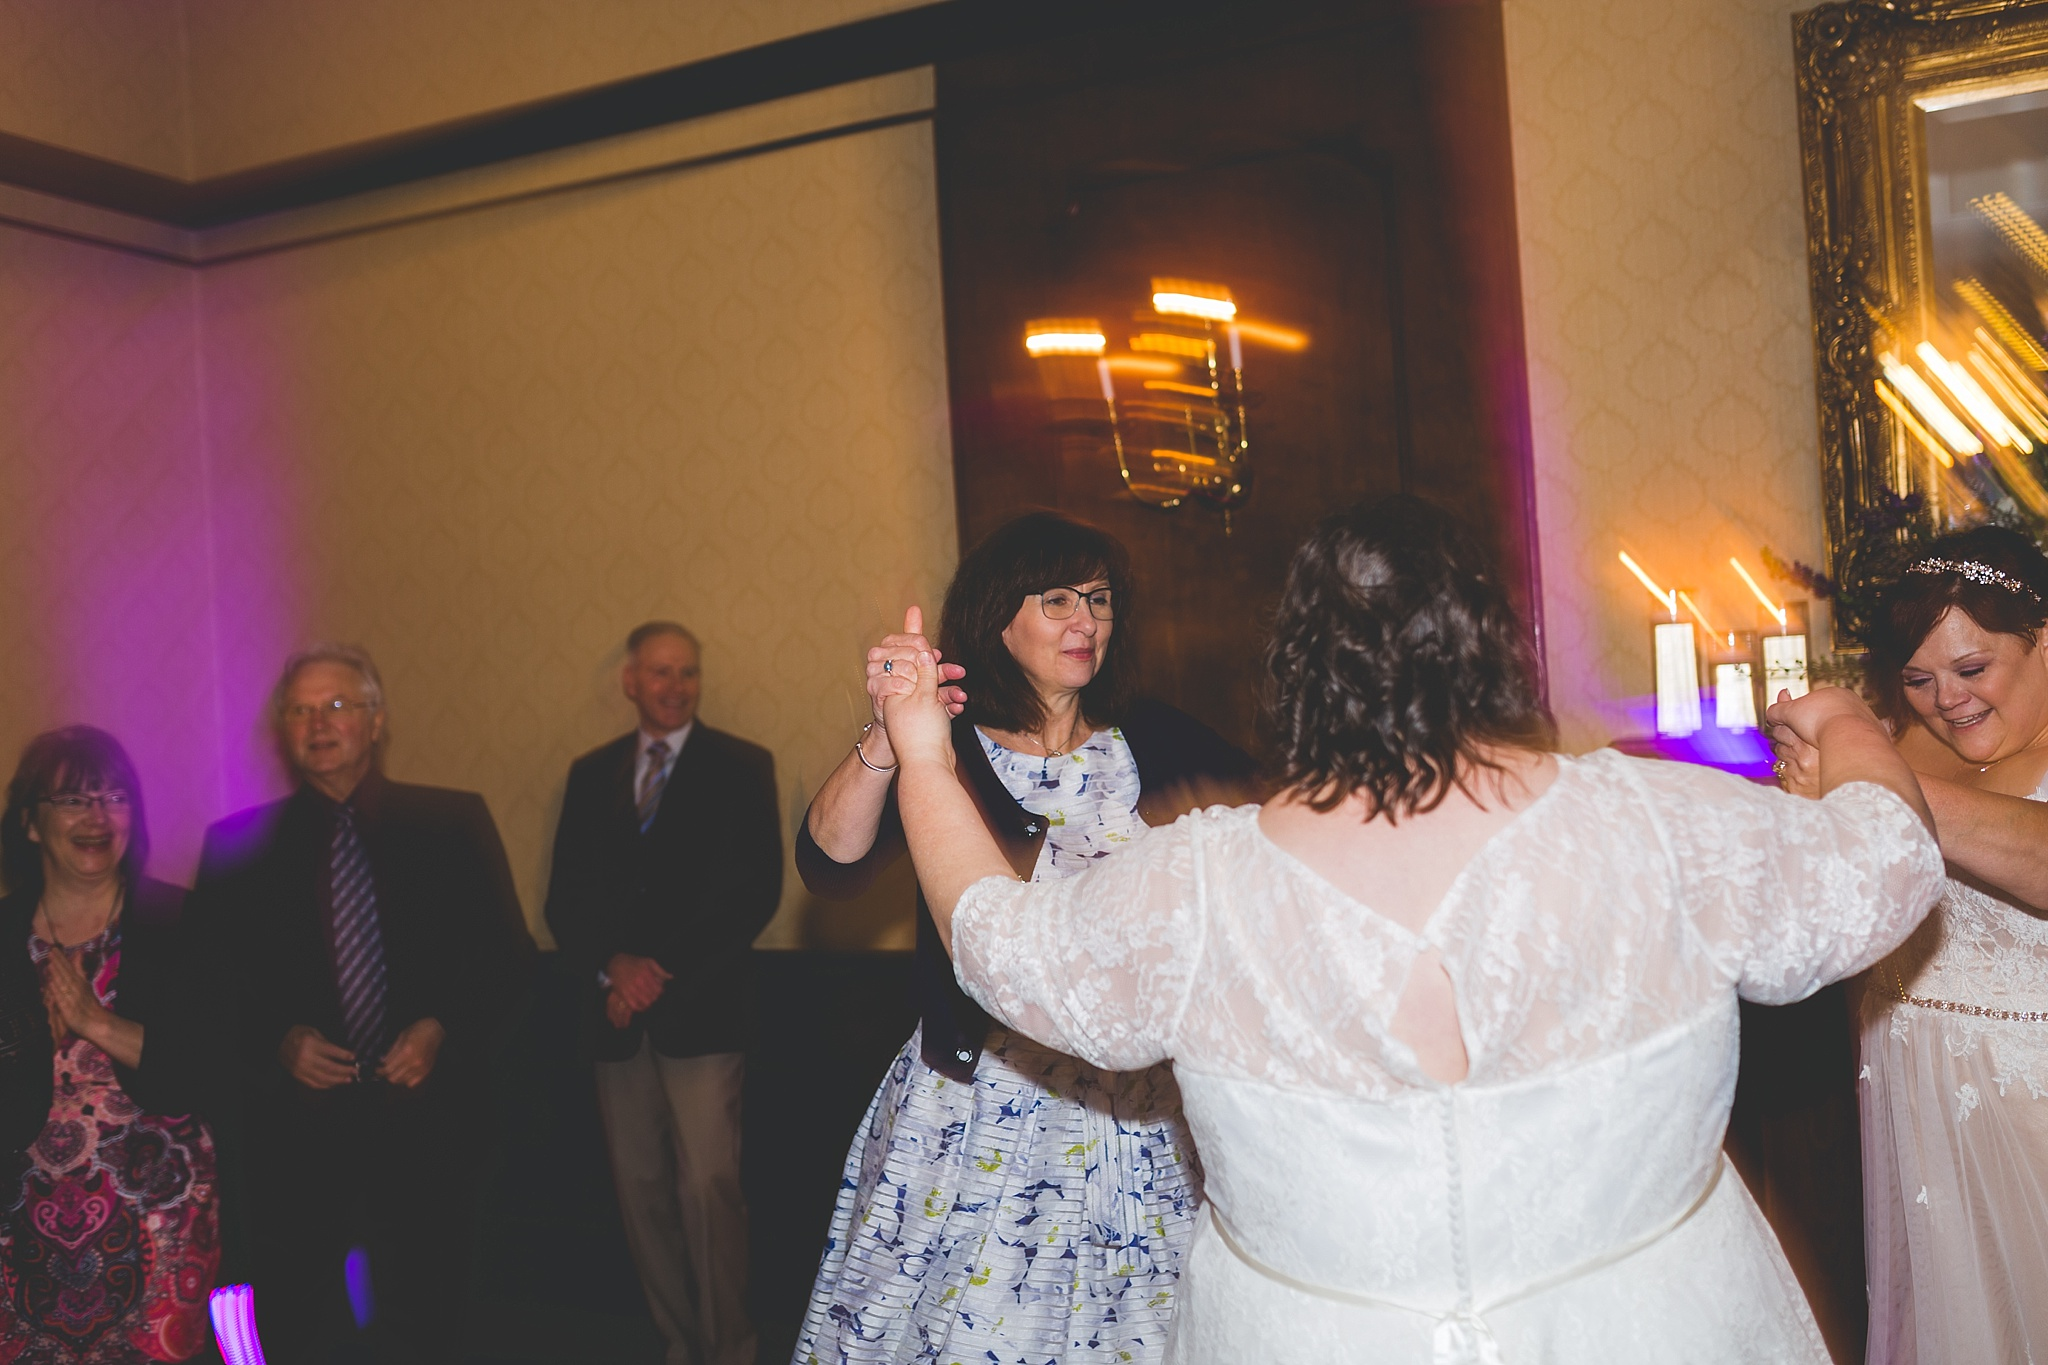 Albany_Wedding_Photographer_8805.jpg